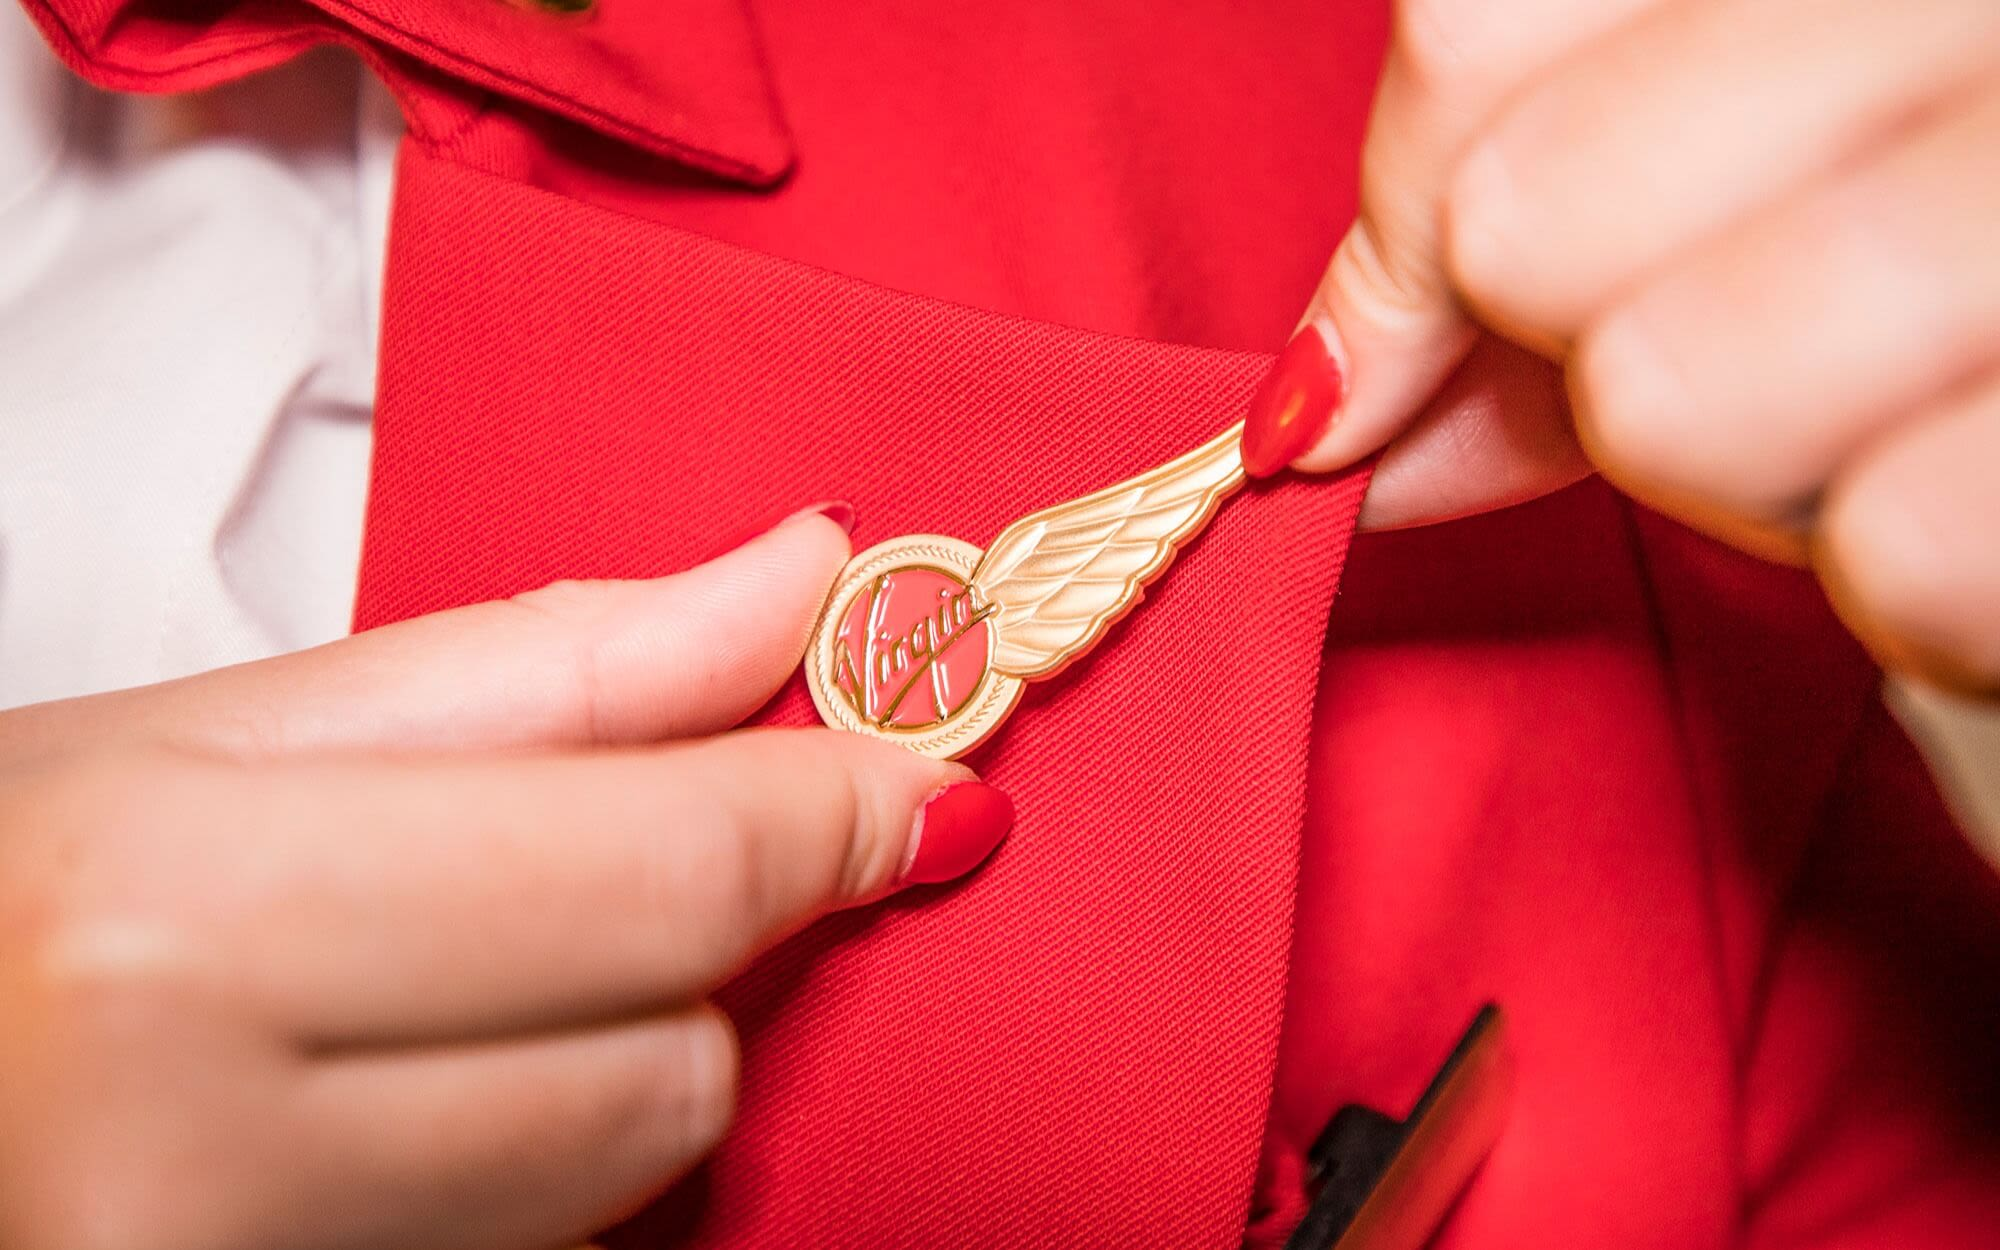 A close up of the Virgin Atlantic wings pin on a lapel. The wearer is adjusting it